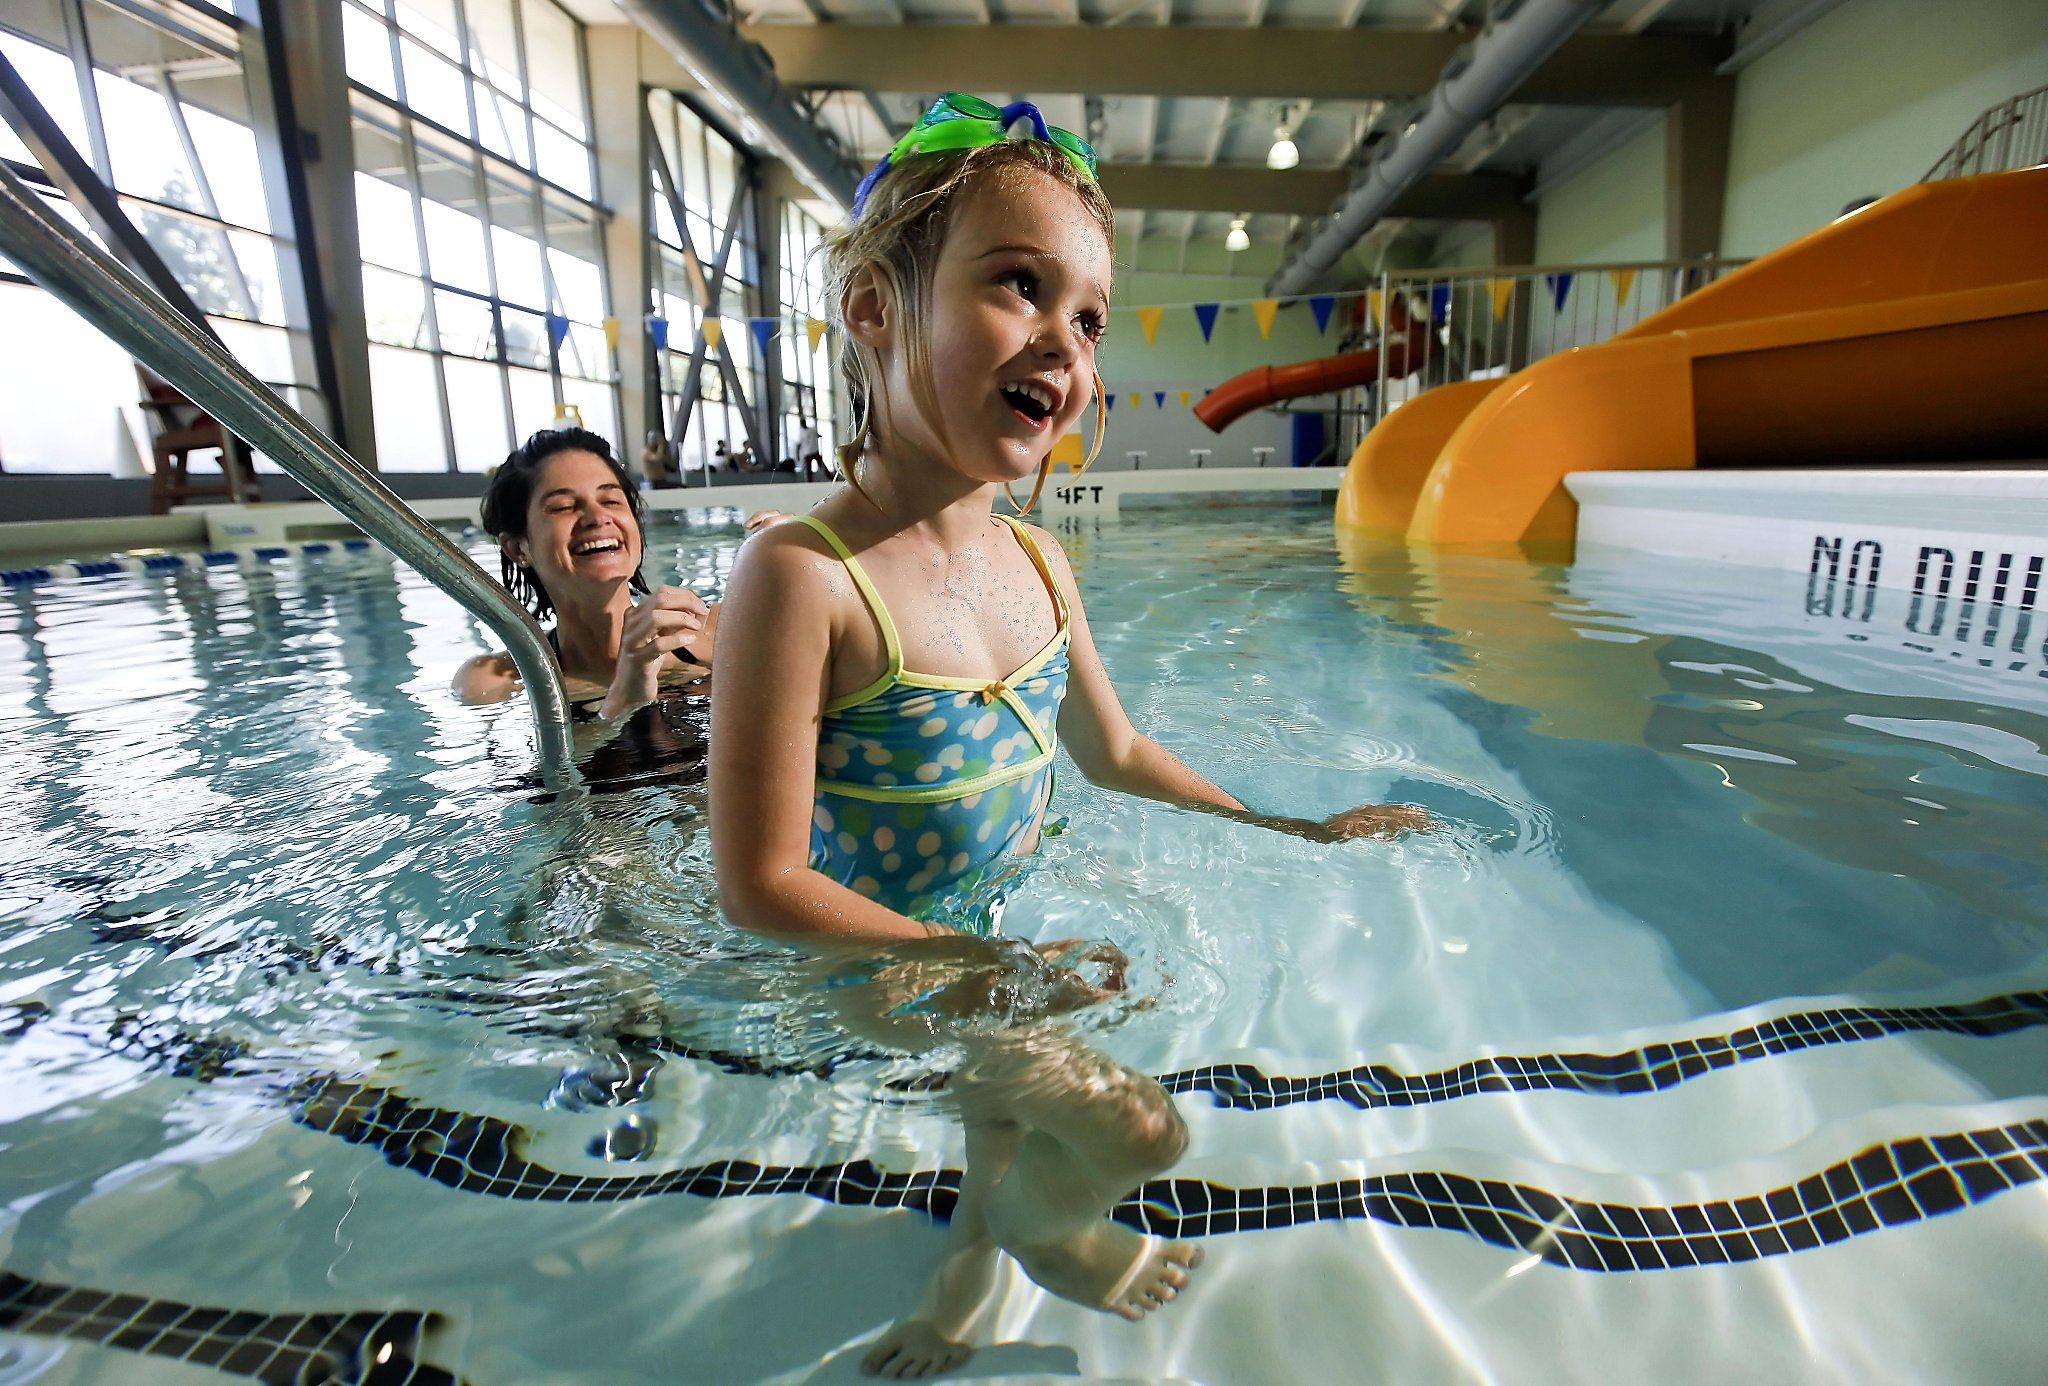 Late switch to sf school schedule leave gap for families to fill san francisco chronicle for Hamilton swimming pool san francisco